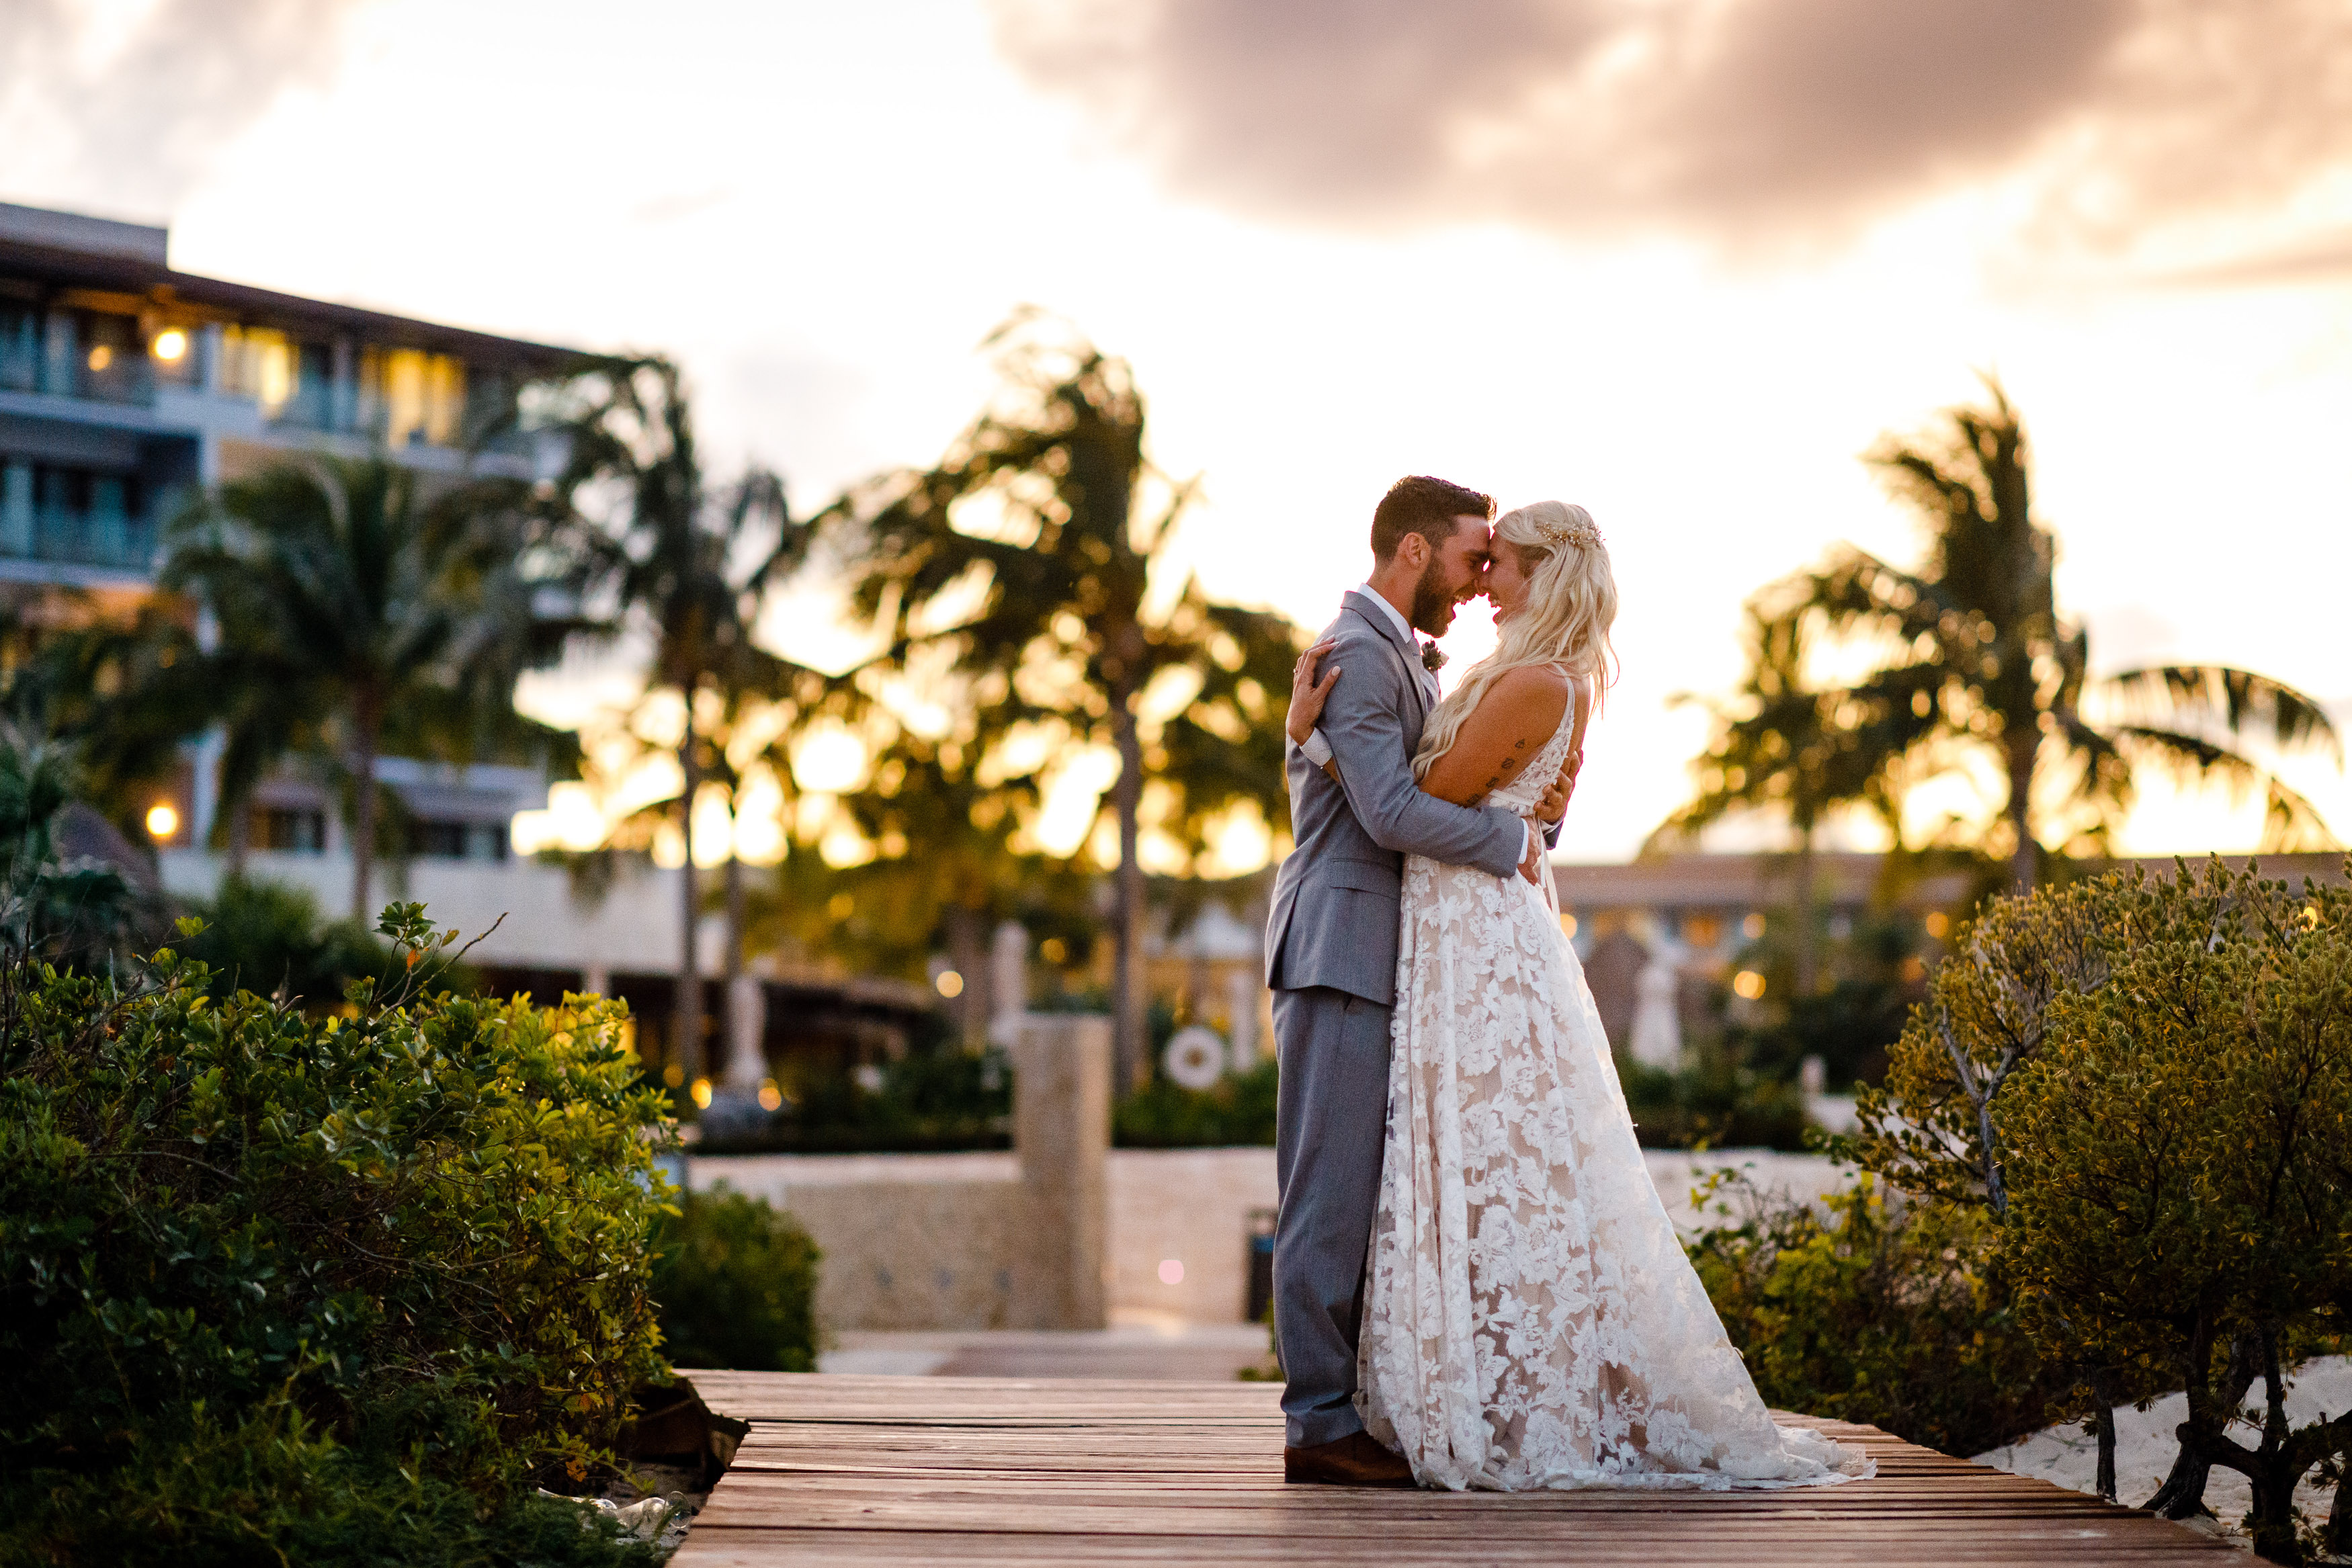 Warm golden hour portraits for Jeff & Cathryn's Dreams Playa Mujeres Wedding in December of 2019.